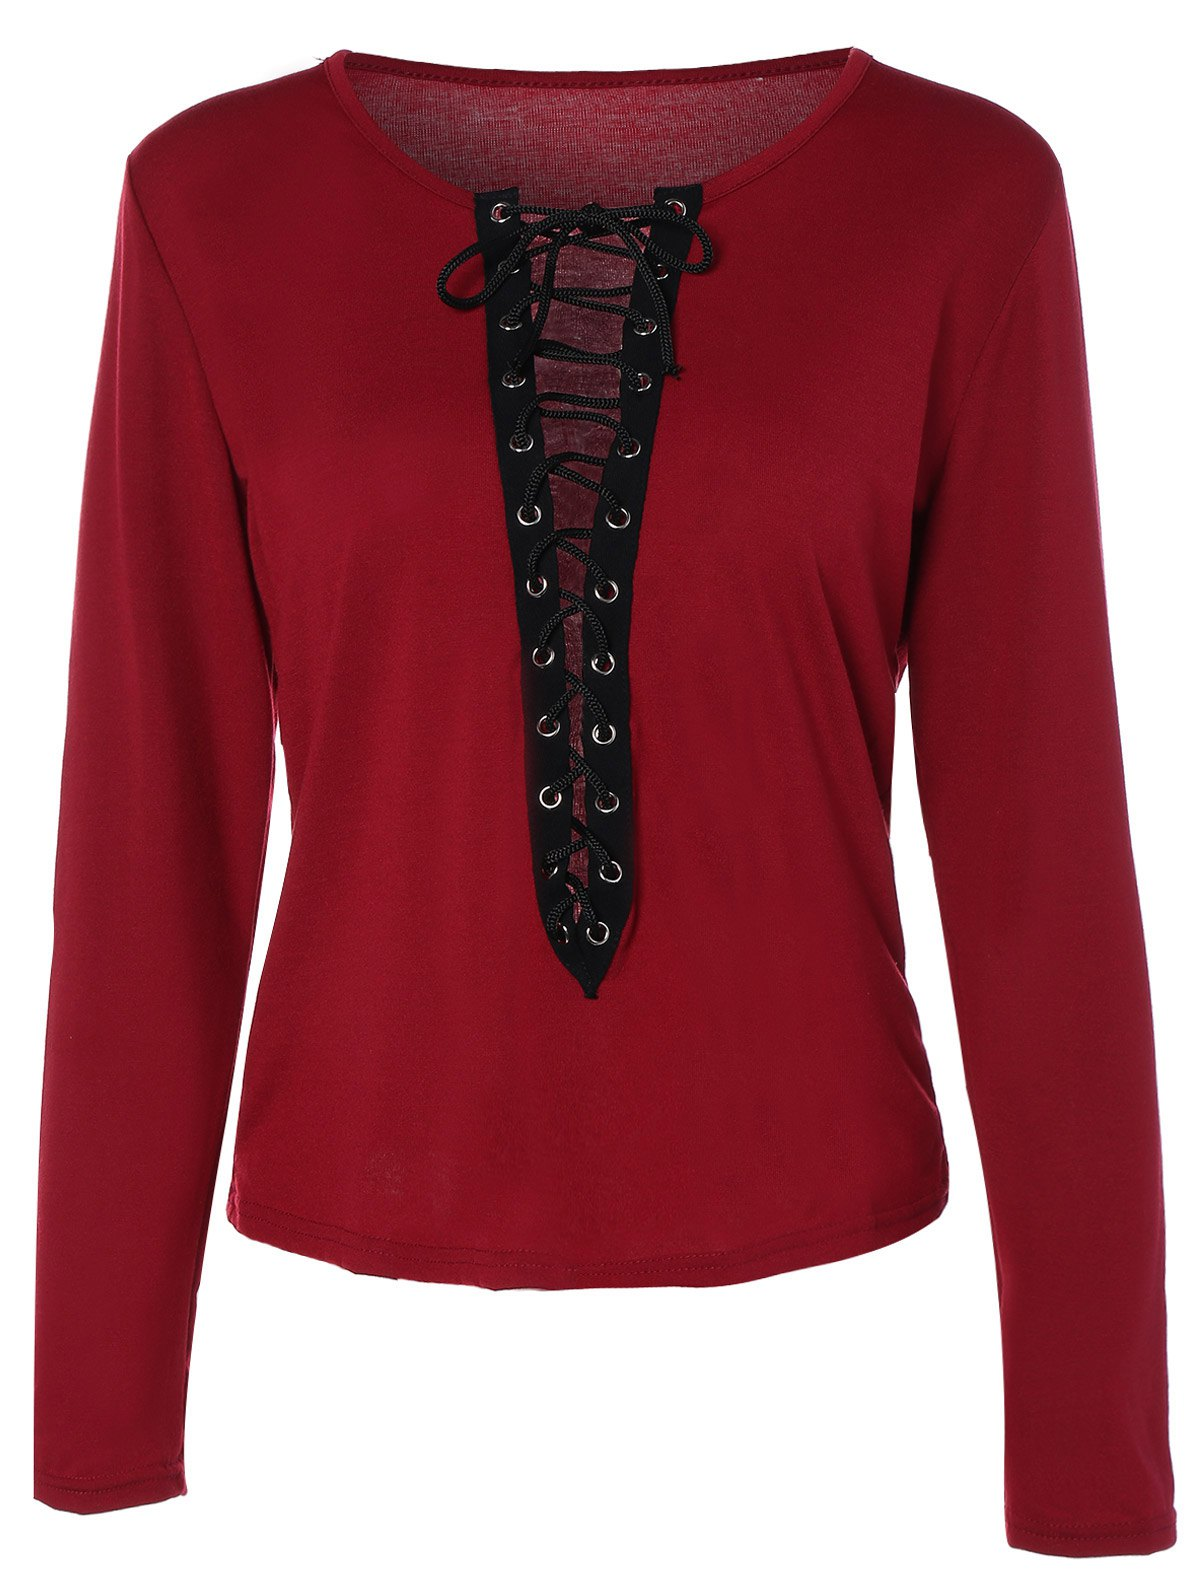 Long Sleeve Criss Cross Plunging Neck T-ShirtWomen<br><br><br>Size: S<br>Color: WINE RED